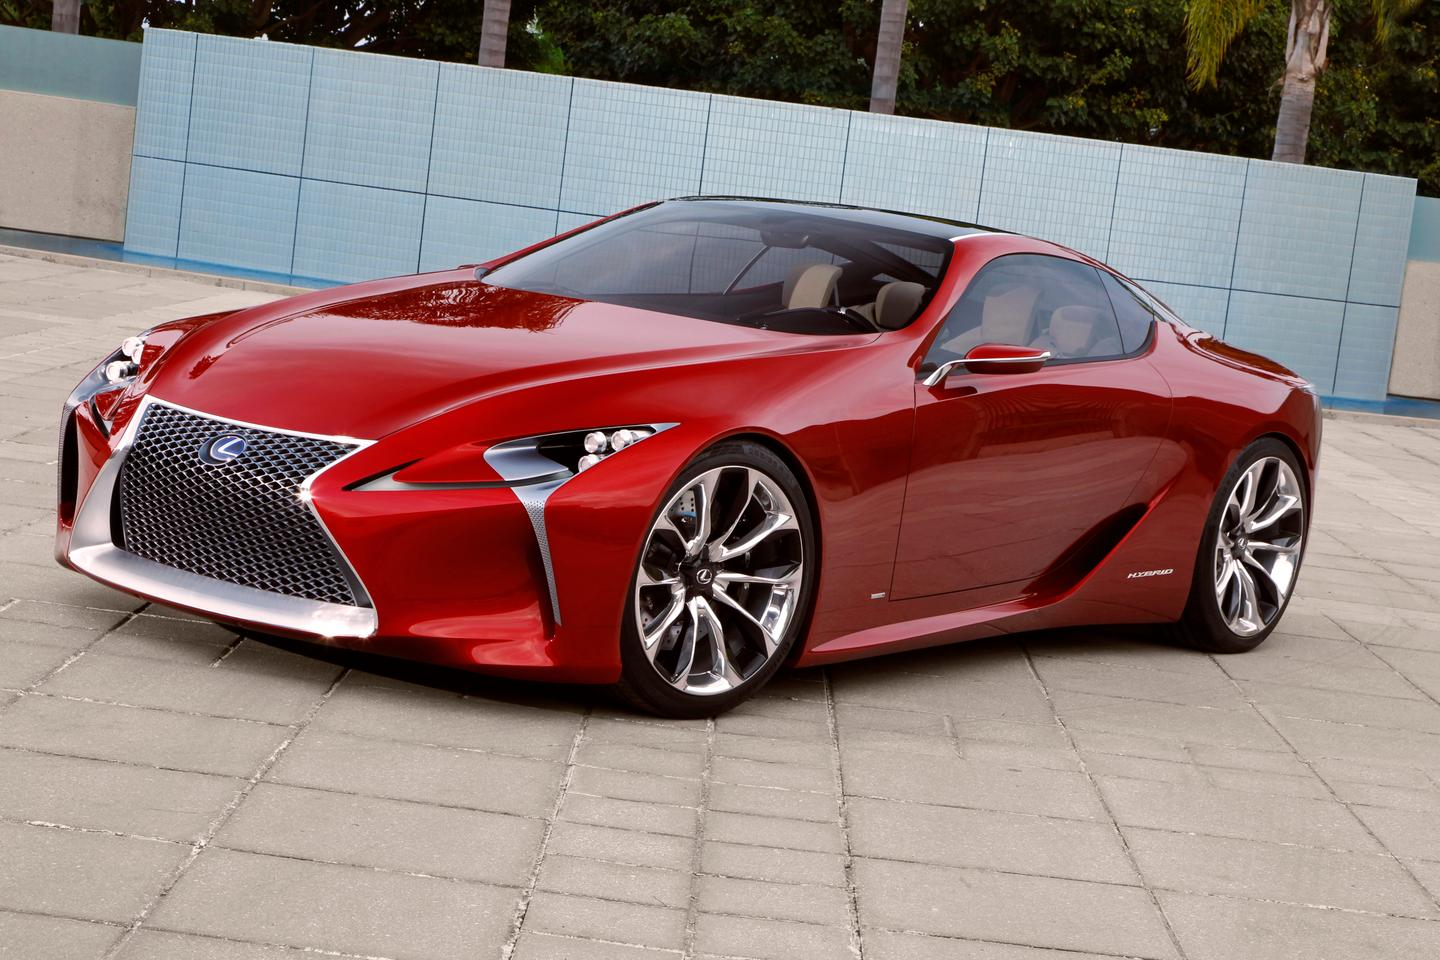 The LF-LC Hybrid Sports Concept from Lexus which was unveiled this week in Detroit